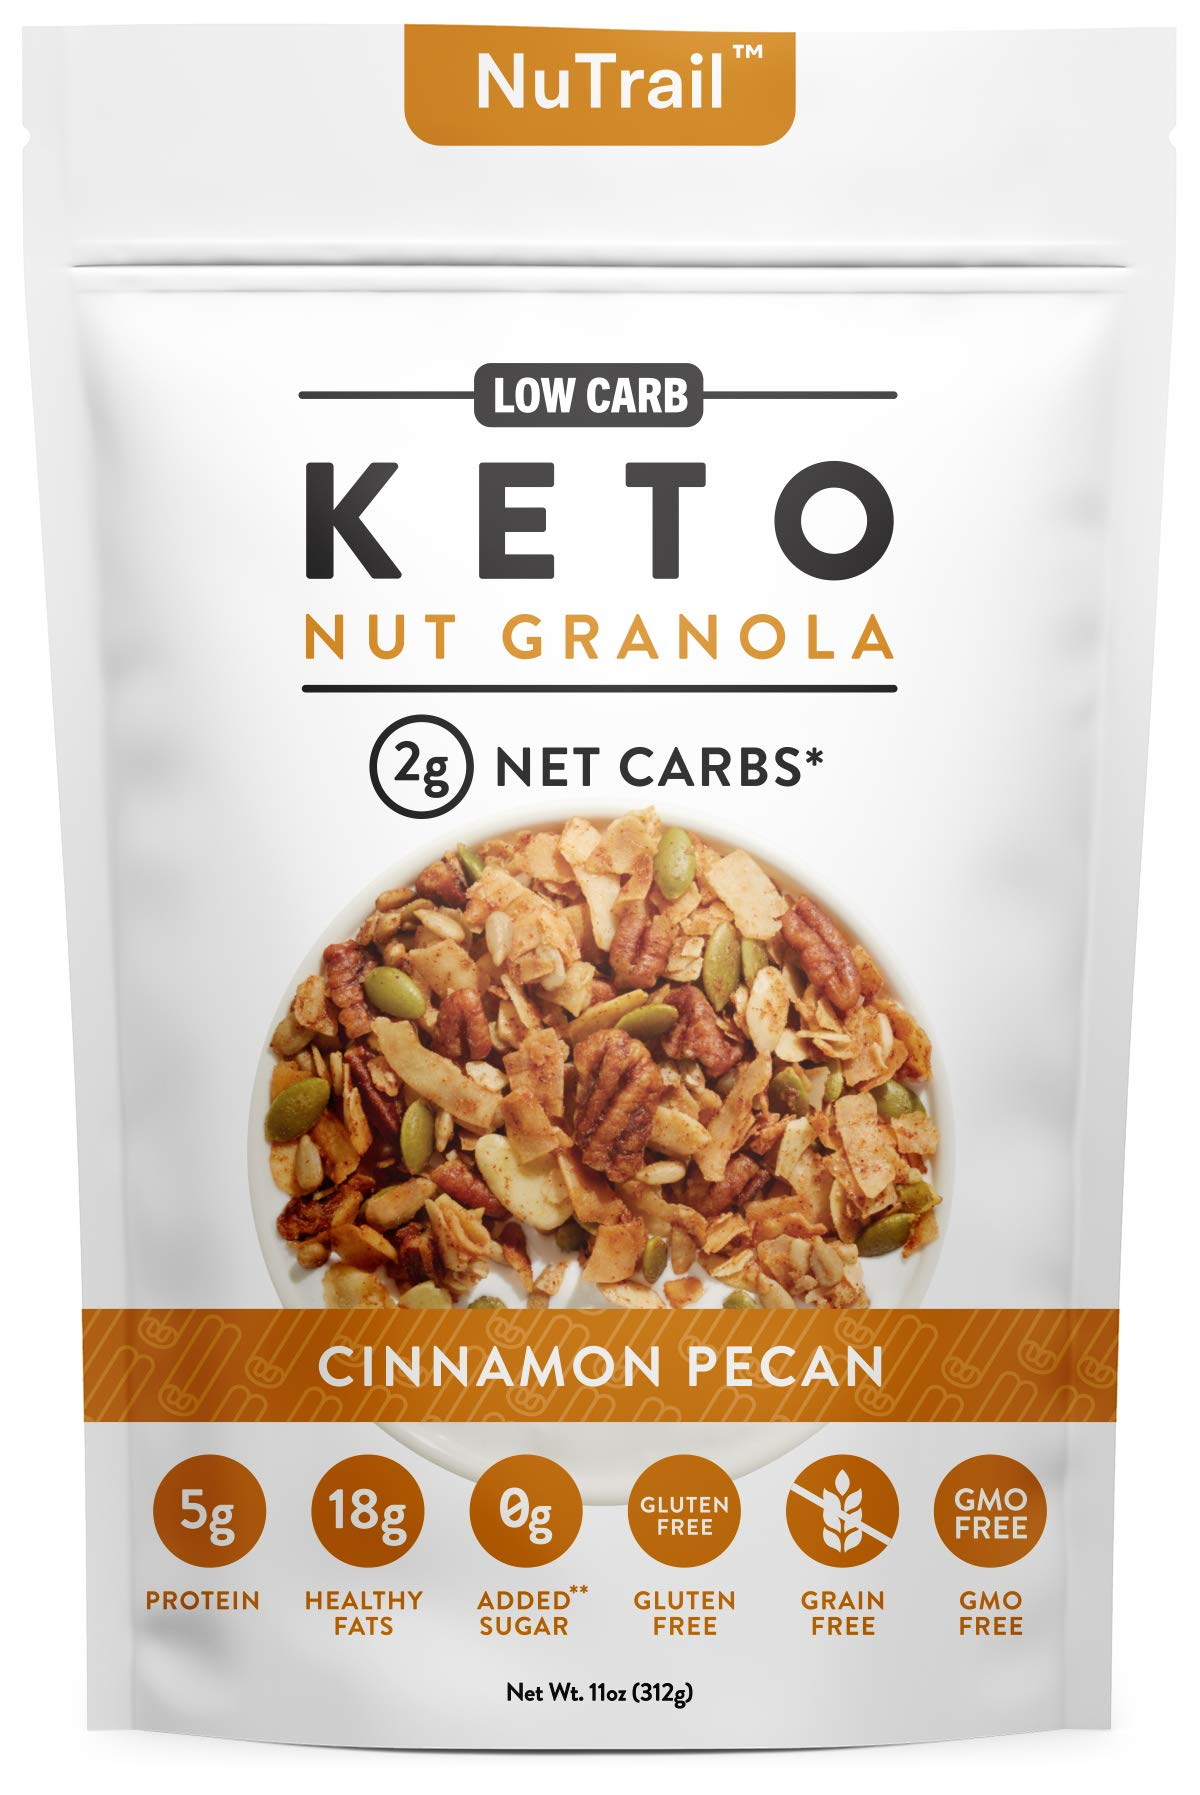 NuTrail™ - Keto Nut Granola Healthy Breakfast Cereal - Low Carb Snacks & Food - 2g Net Carbs - Almonds, Pecans, Coconut and more (11 oz) (1 Count)